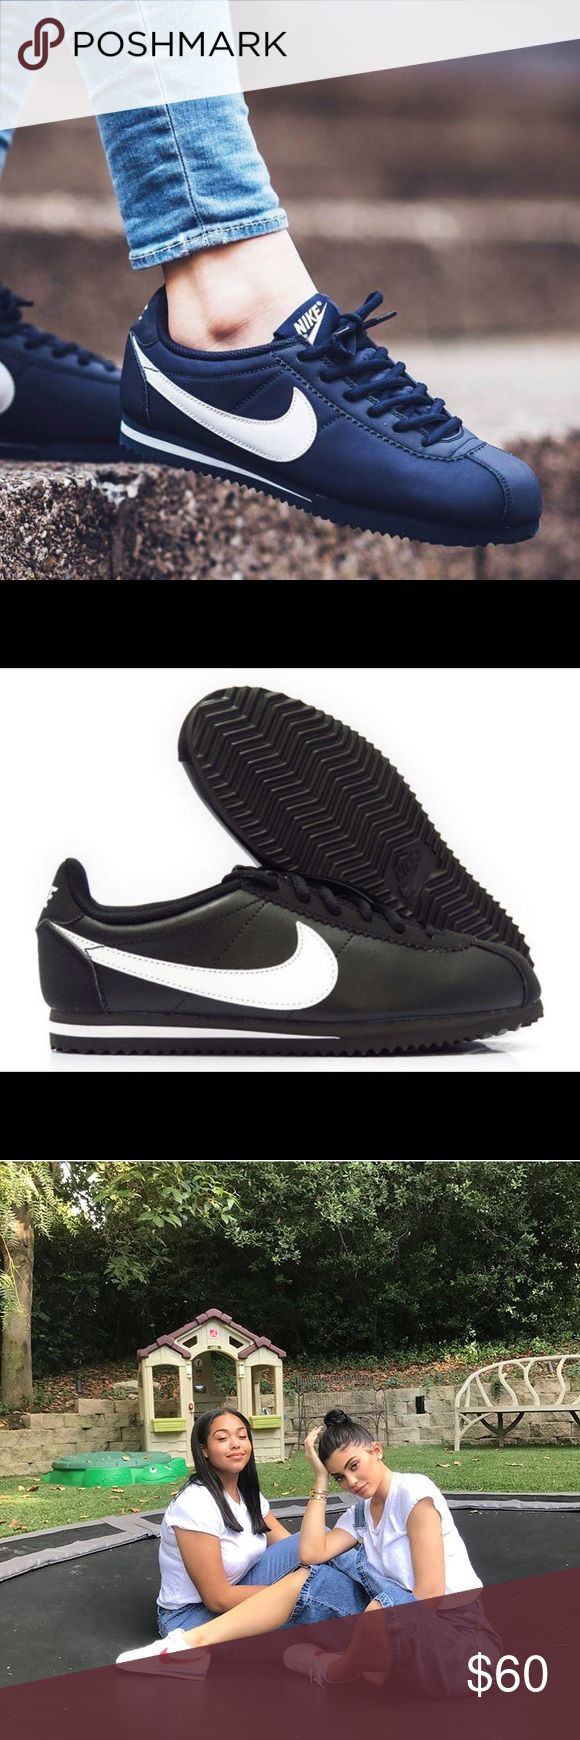 😎😎😎As seen on Kylie Jenner 😎😎😎 Classic black and white nike Cortez can't go wrong, get em while they last Nike Shoes Sneakers